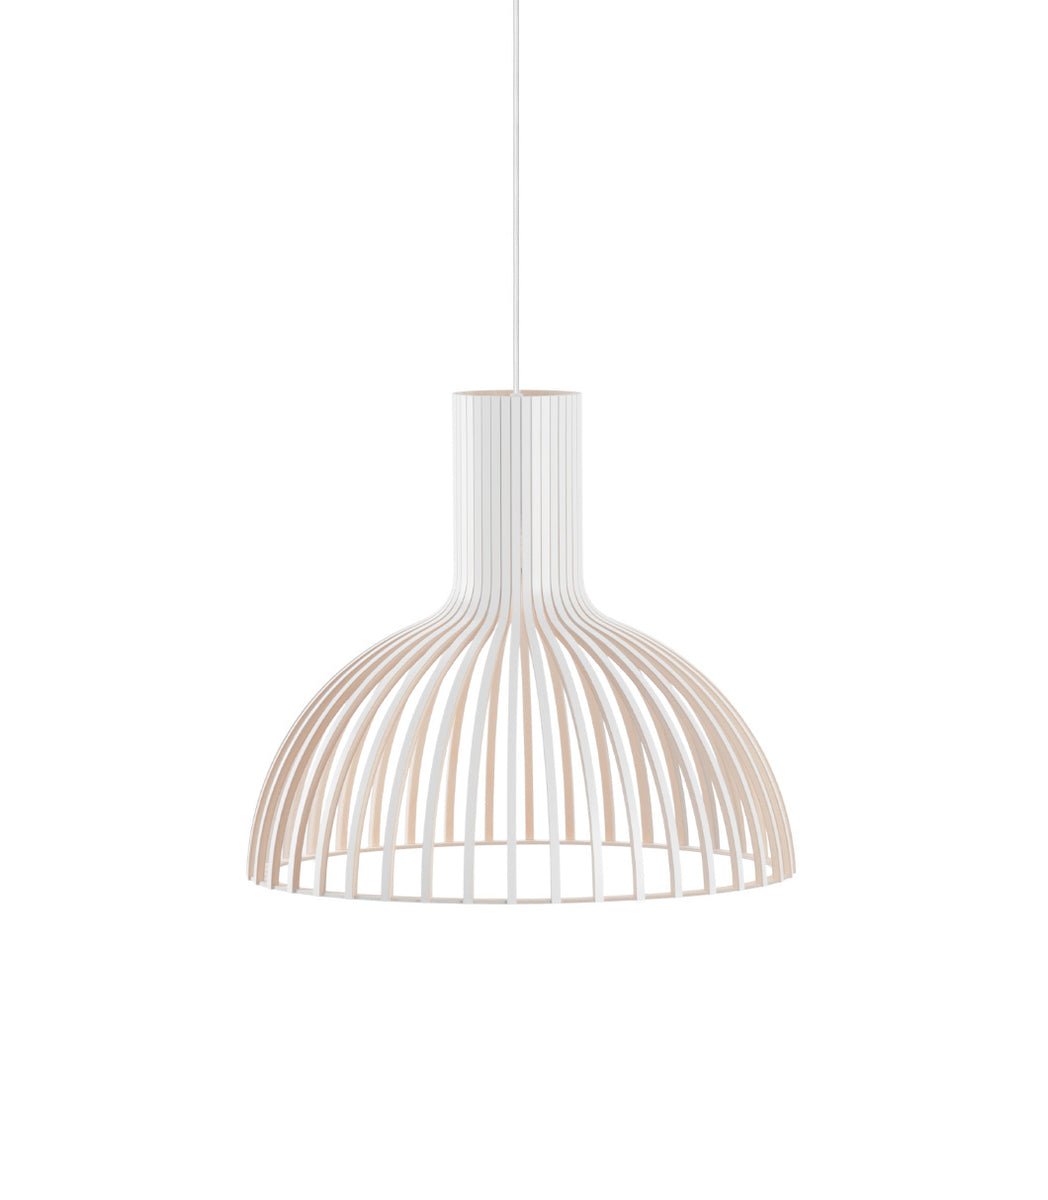 High end ceiling pendant Victo 4251 White 2